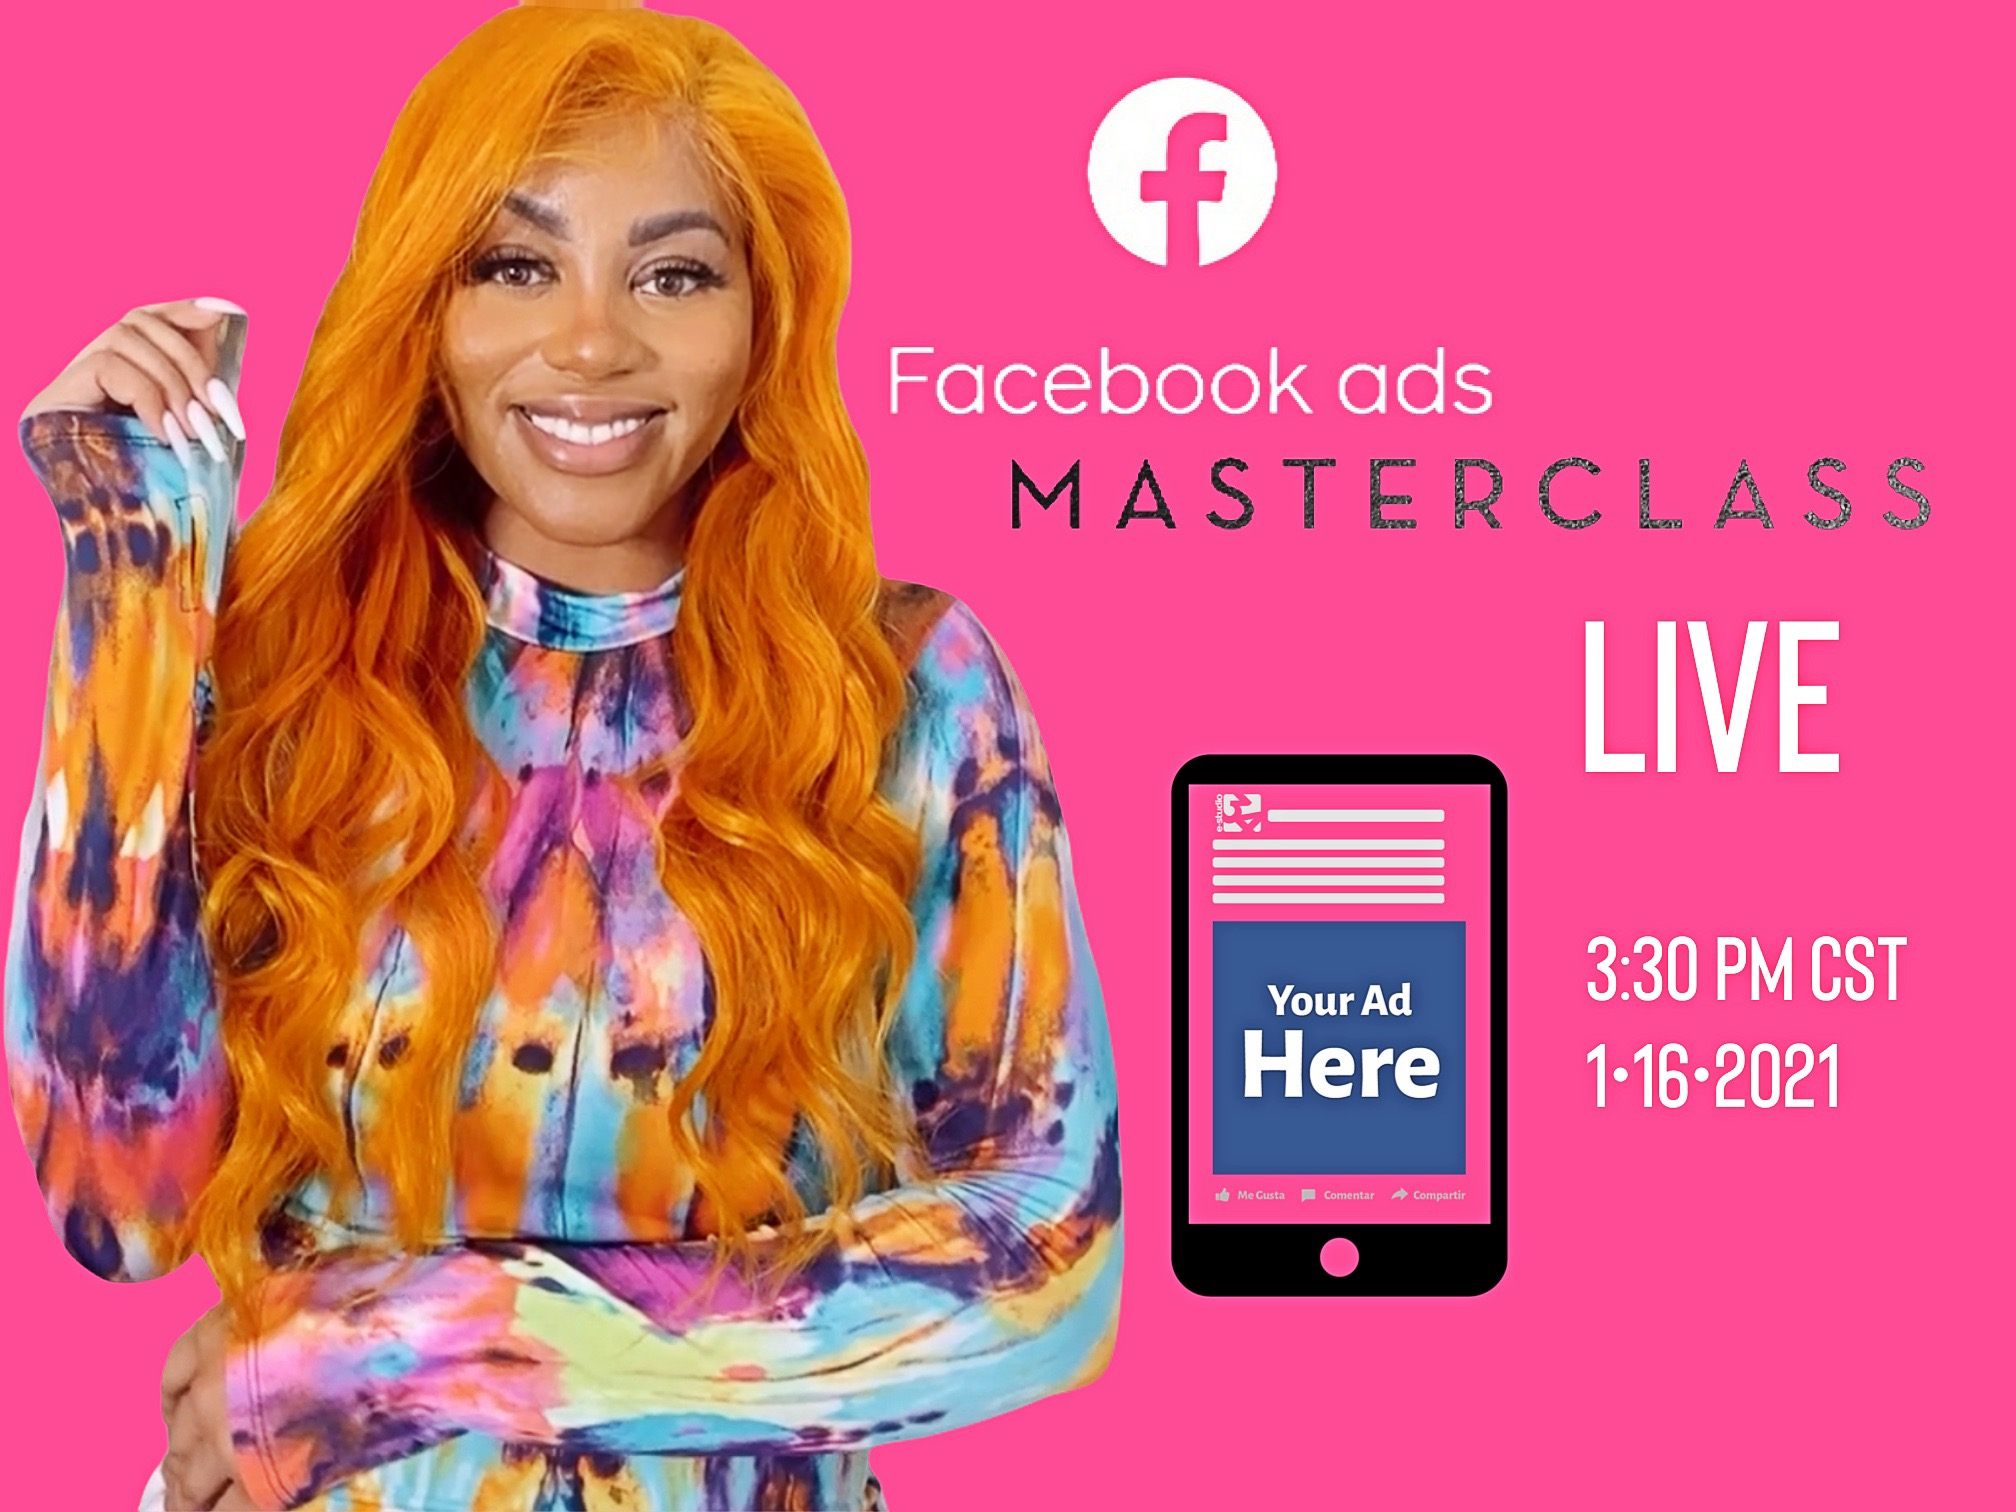 MasterProfitz - Facebook Advertising Strategies For 2021